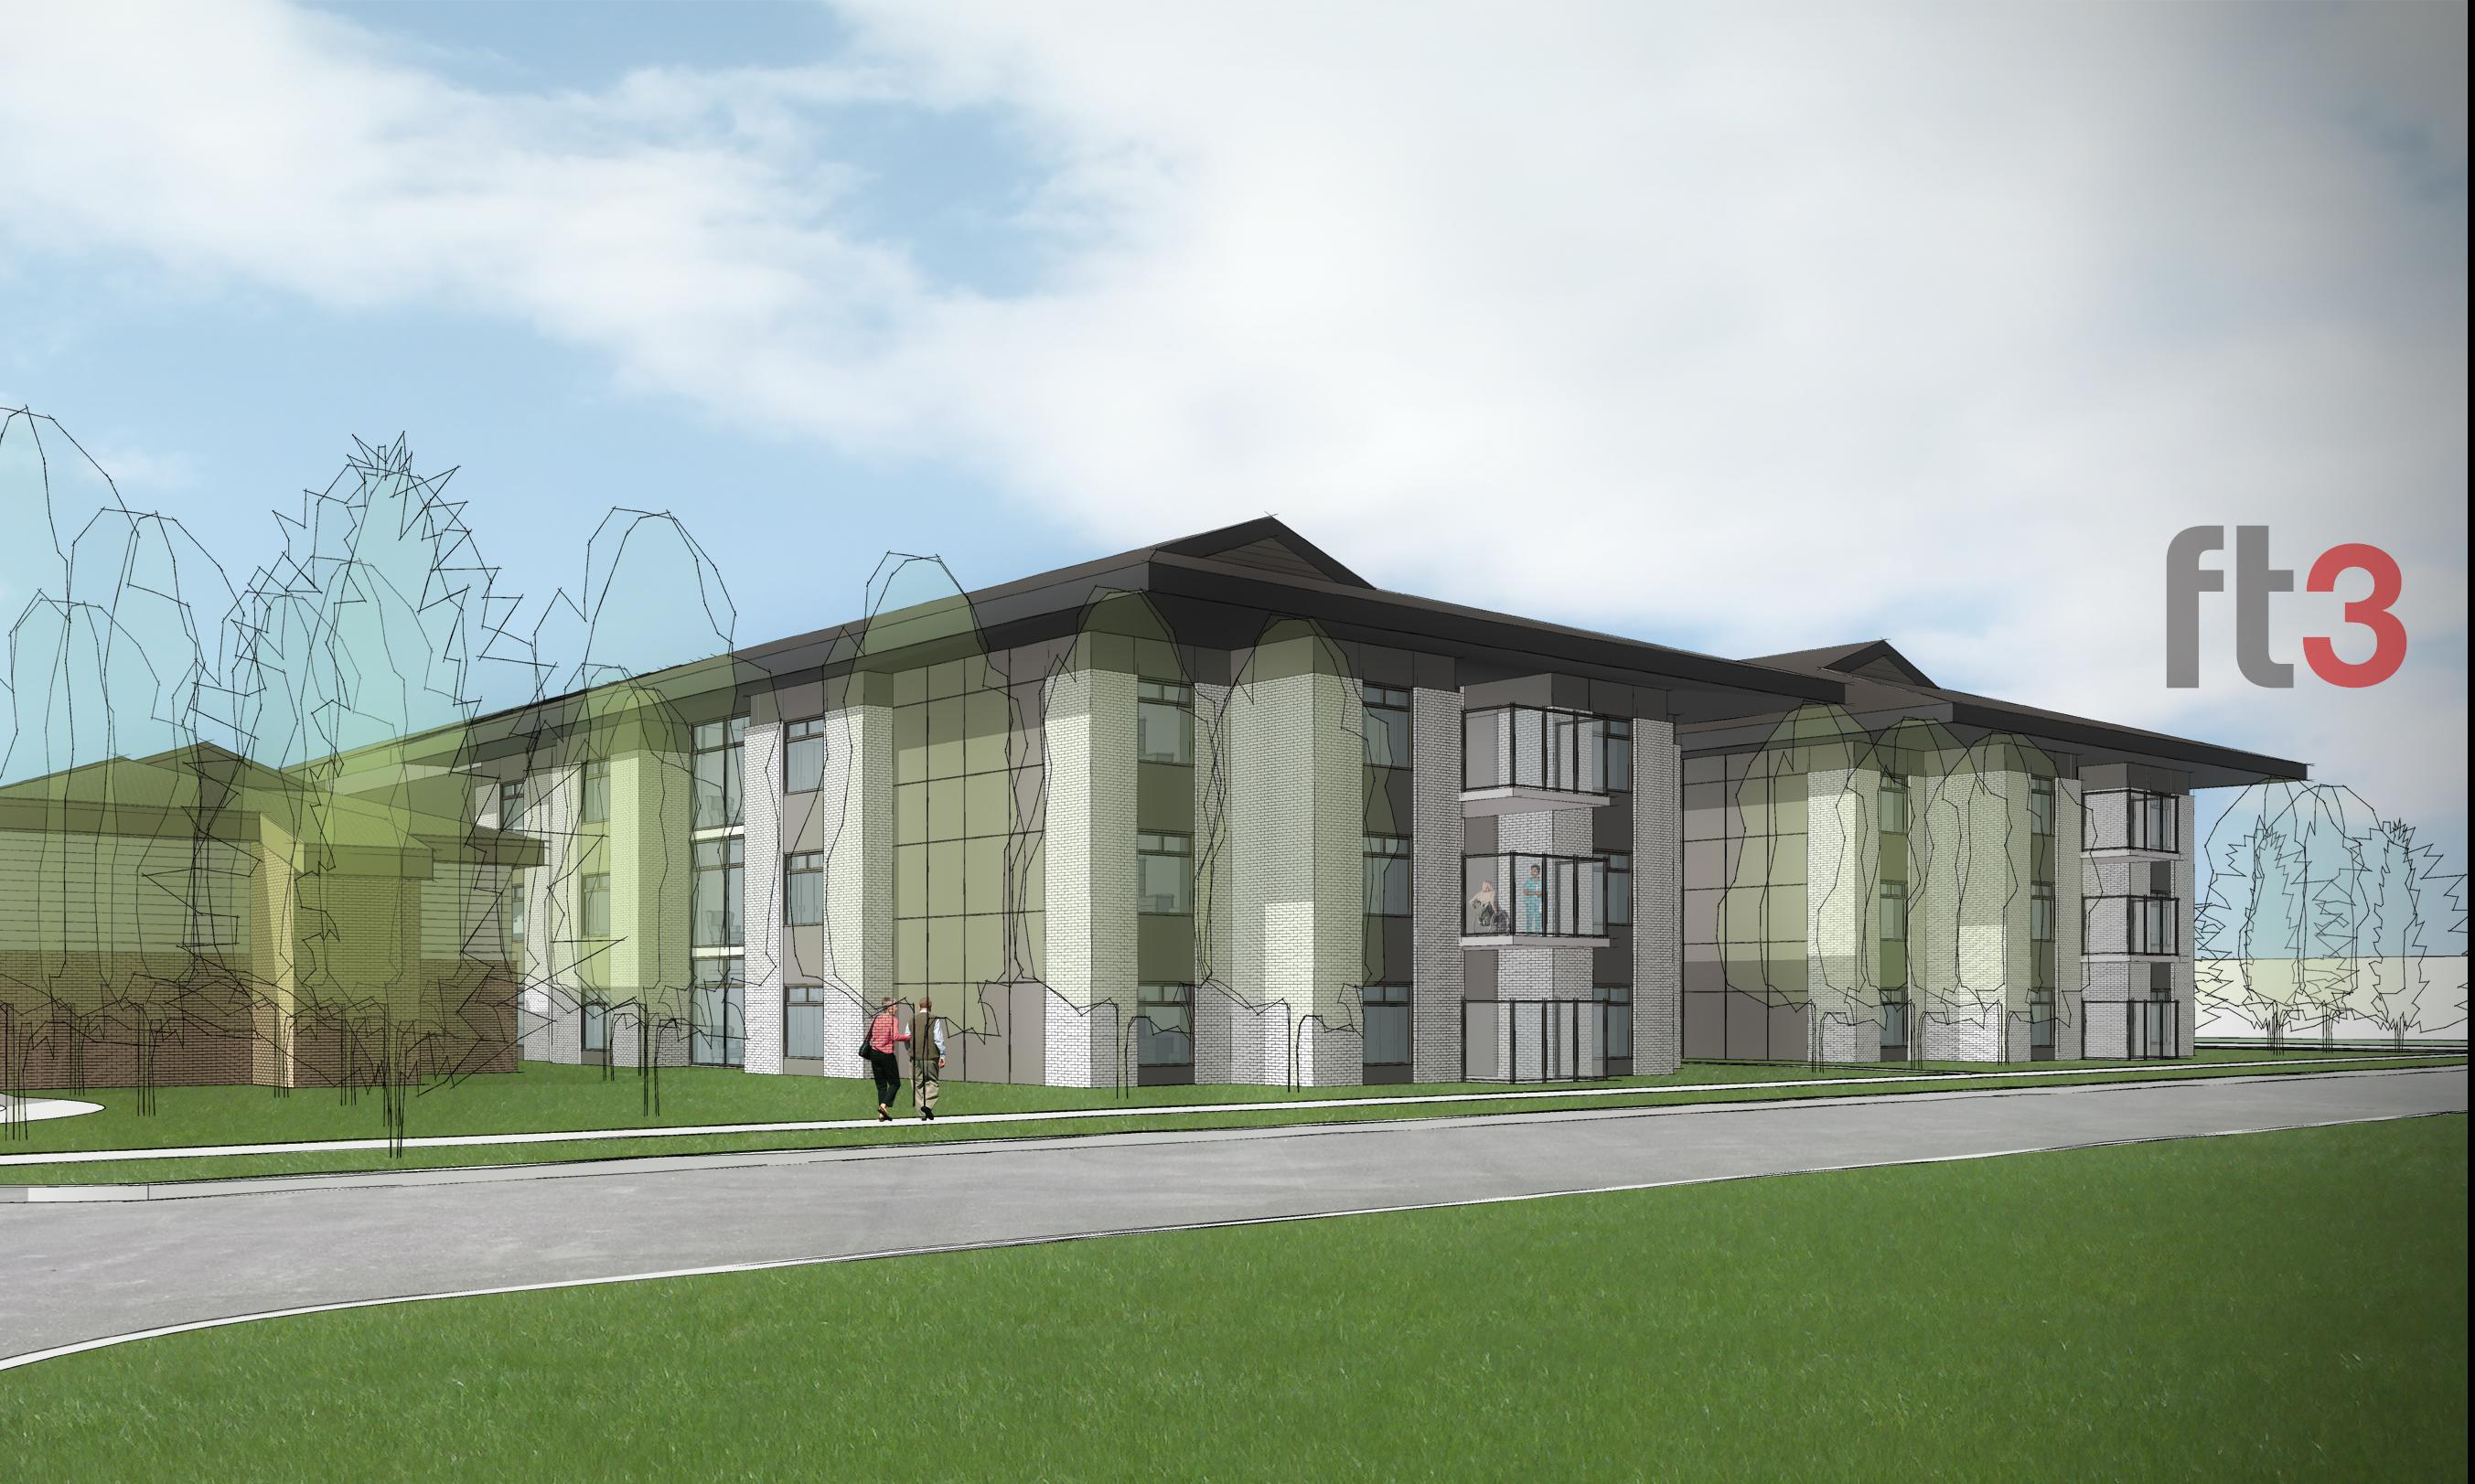 Rest Haven Nursing Home. Rendering of the new addition to the personal care home as seen from the side / street view.